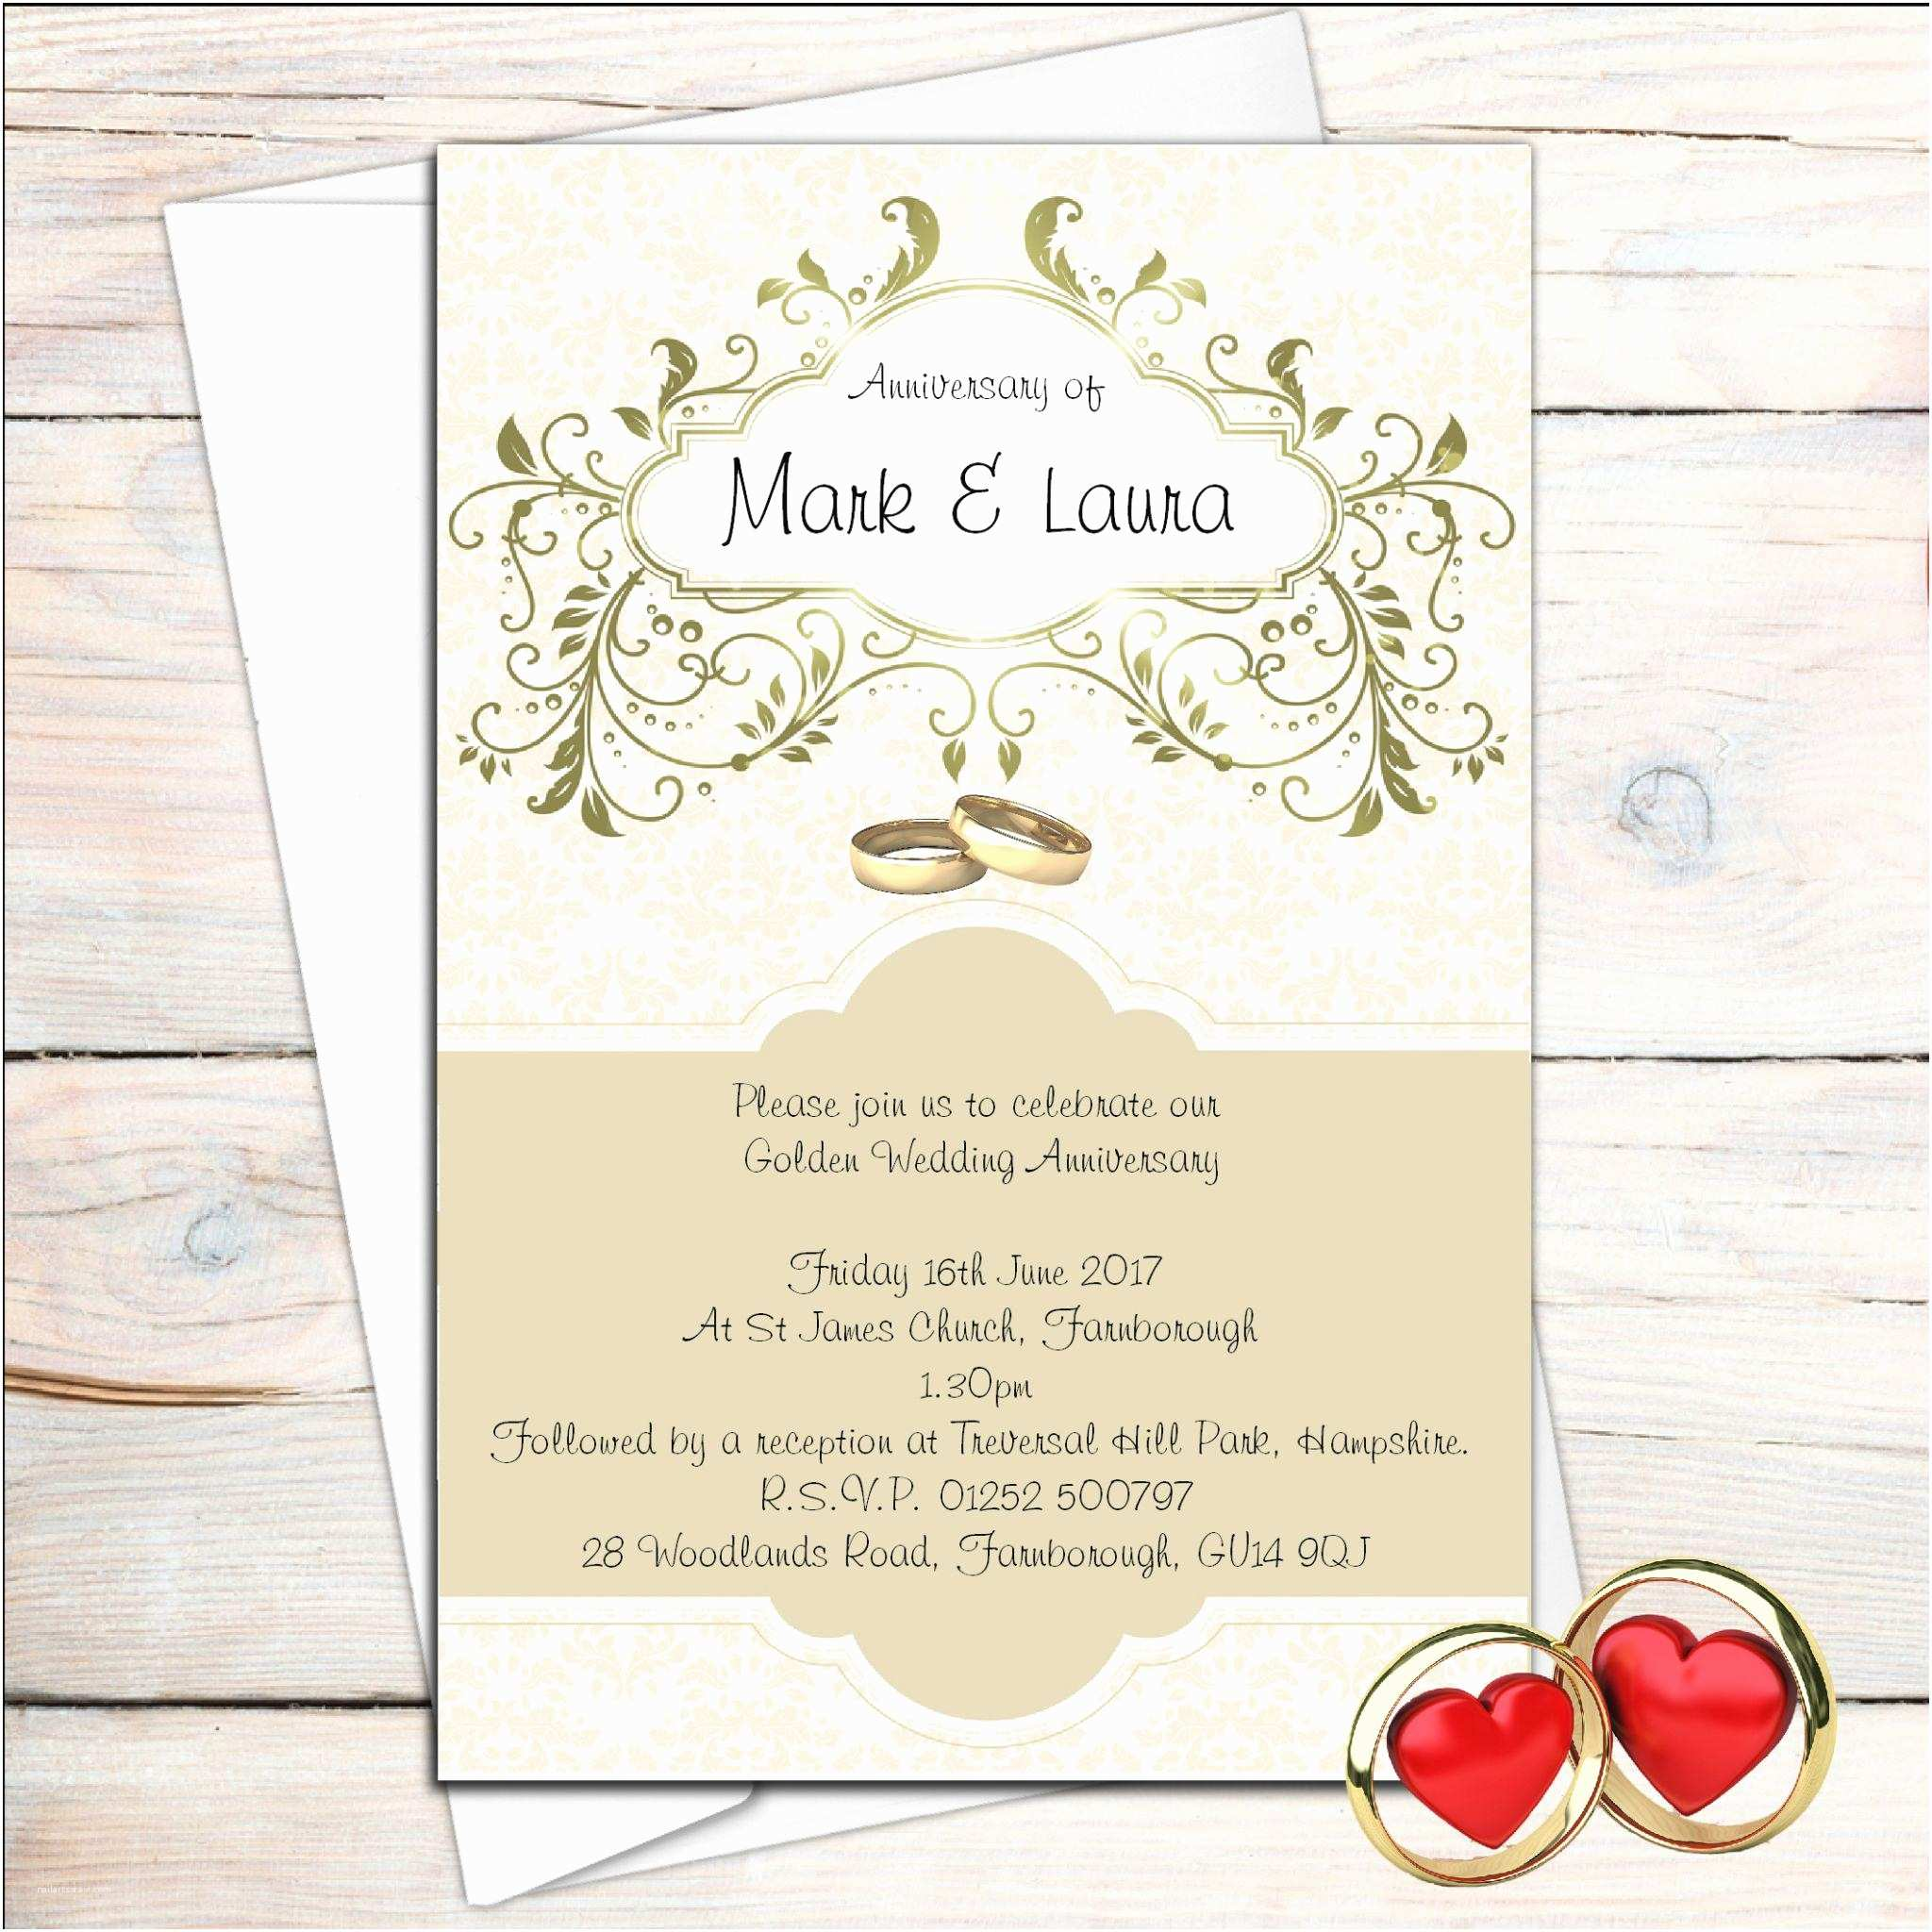 Golden Wedding Anniversary Invitations Golden Wedding Anniversary Invitations 50th Wedding